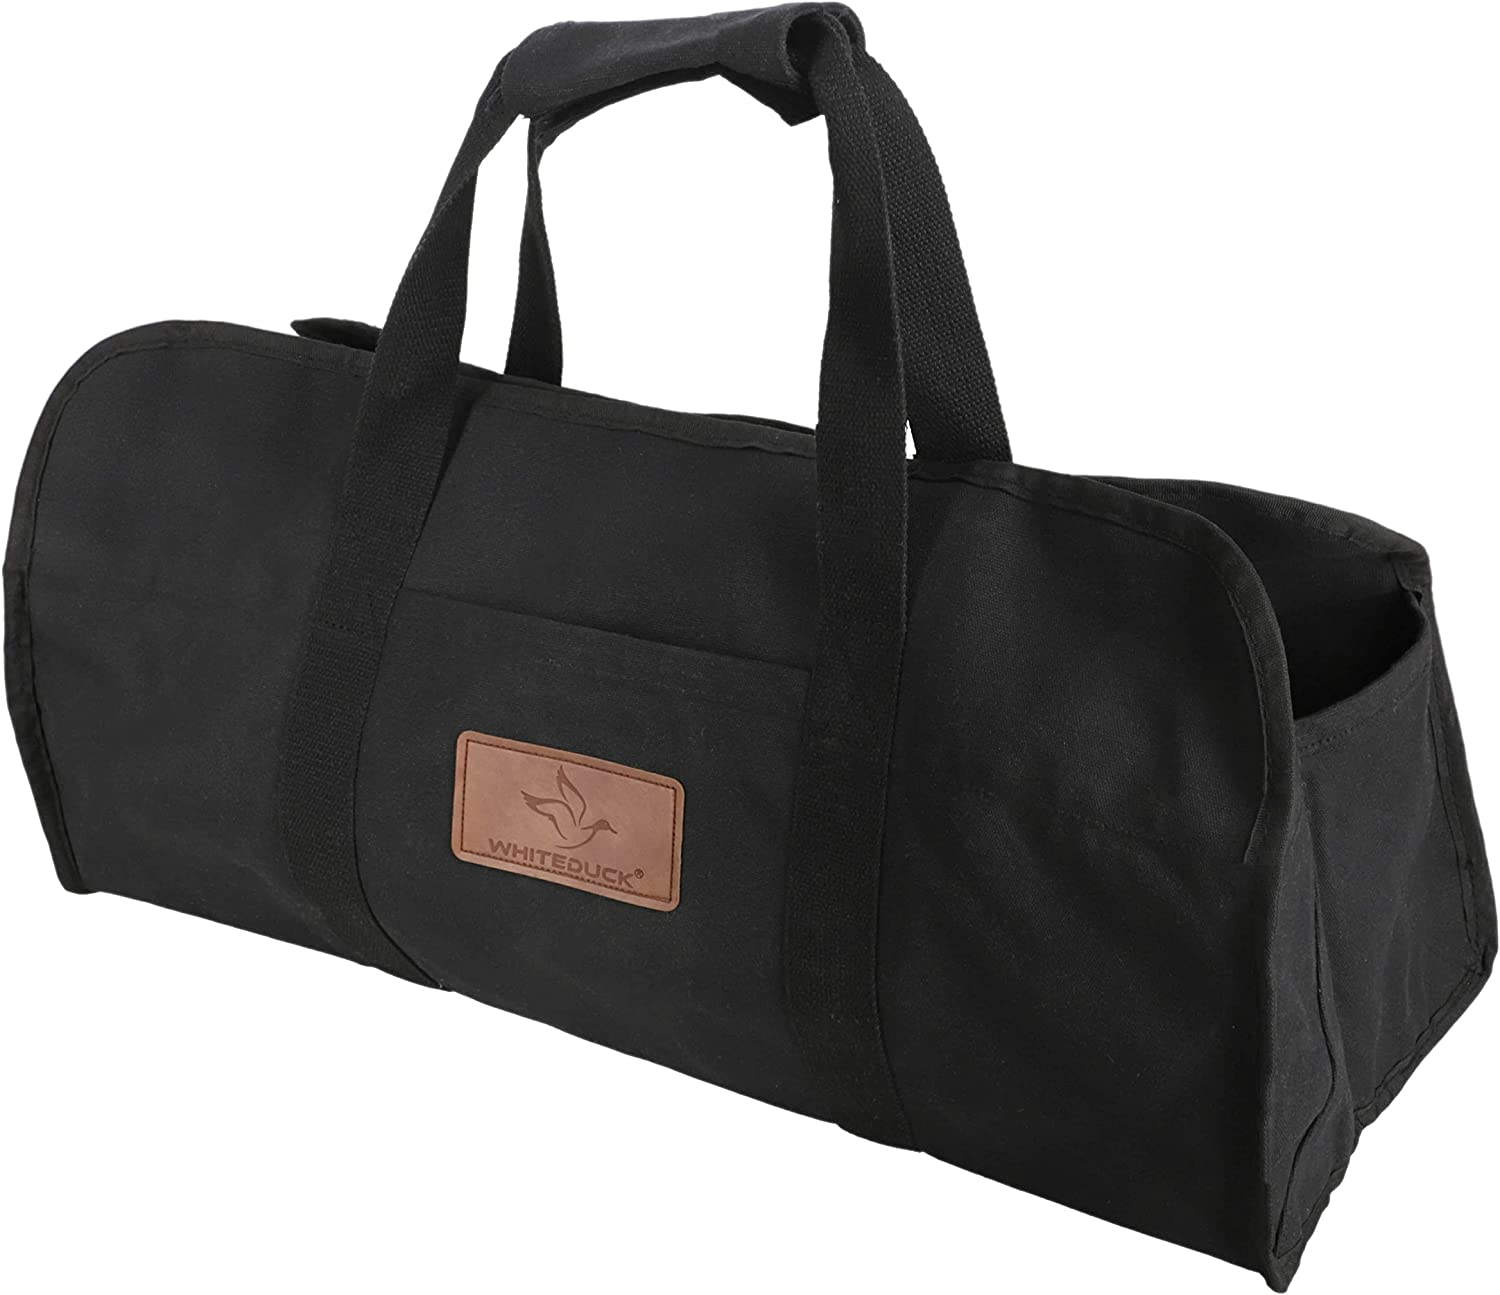 WHITEDUCK TUFF Large Firewood Carrier 21 Heavy Waxed Sale price Ca Duty Oz. specialty shop